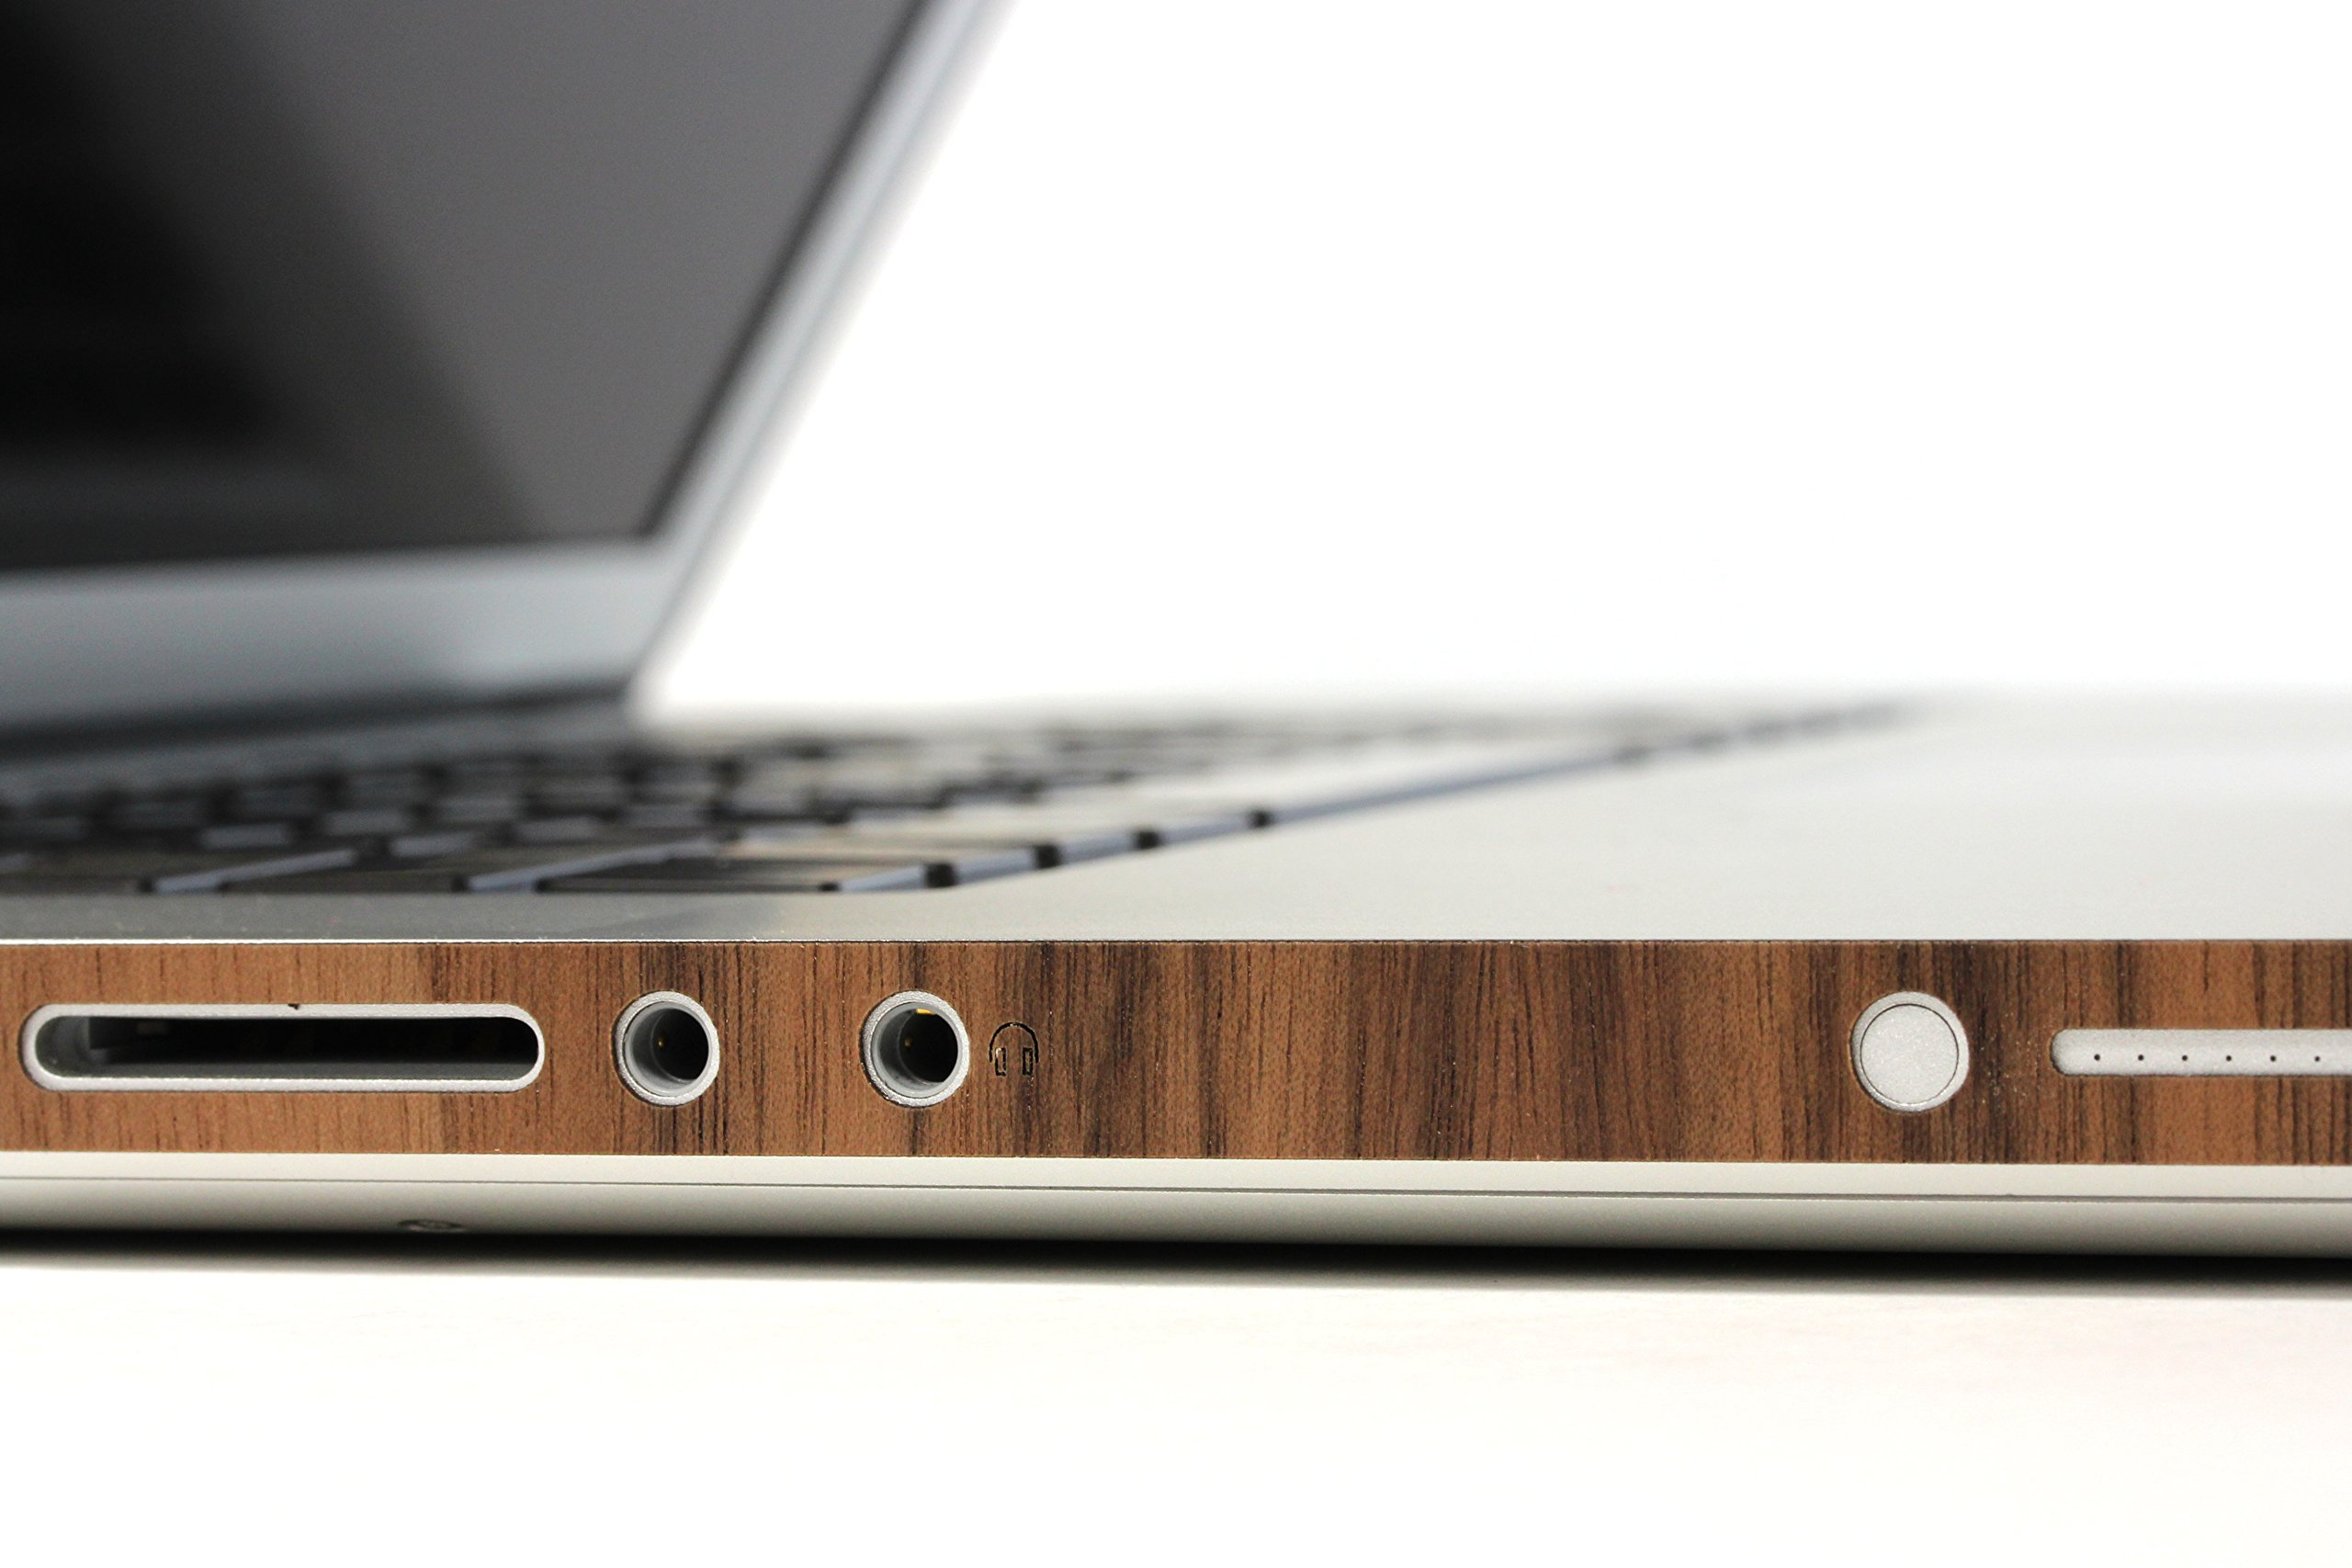 TOAST Real Wood Walnut Cover for MacBook Pro 15-Inch Non-Retina Version (MBPR-15N-PLA-01-COM) by Toast (Image #4)